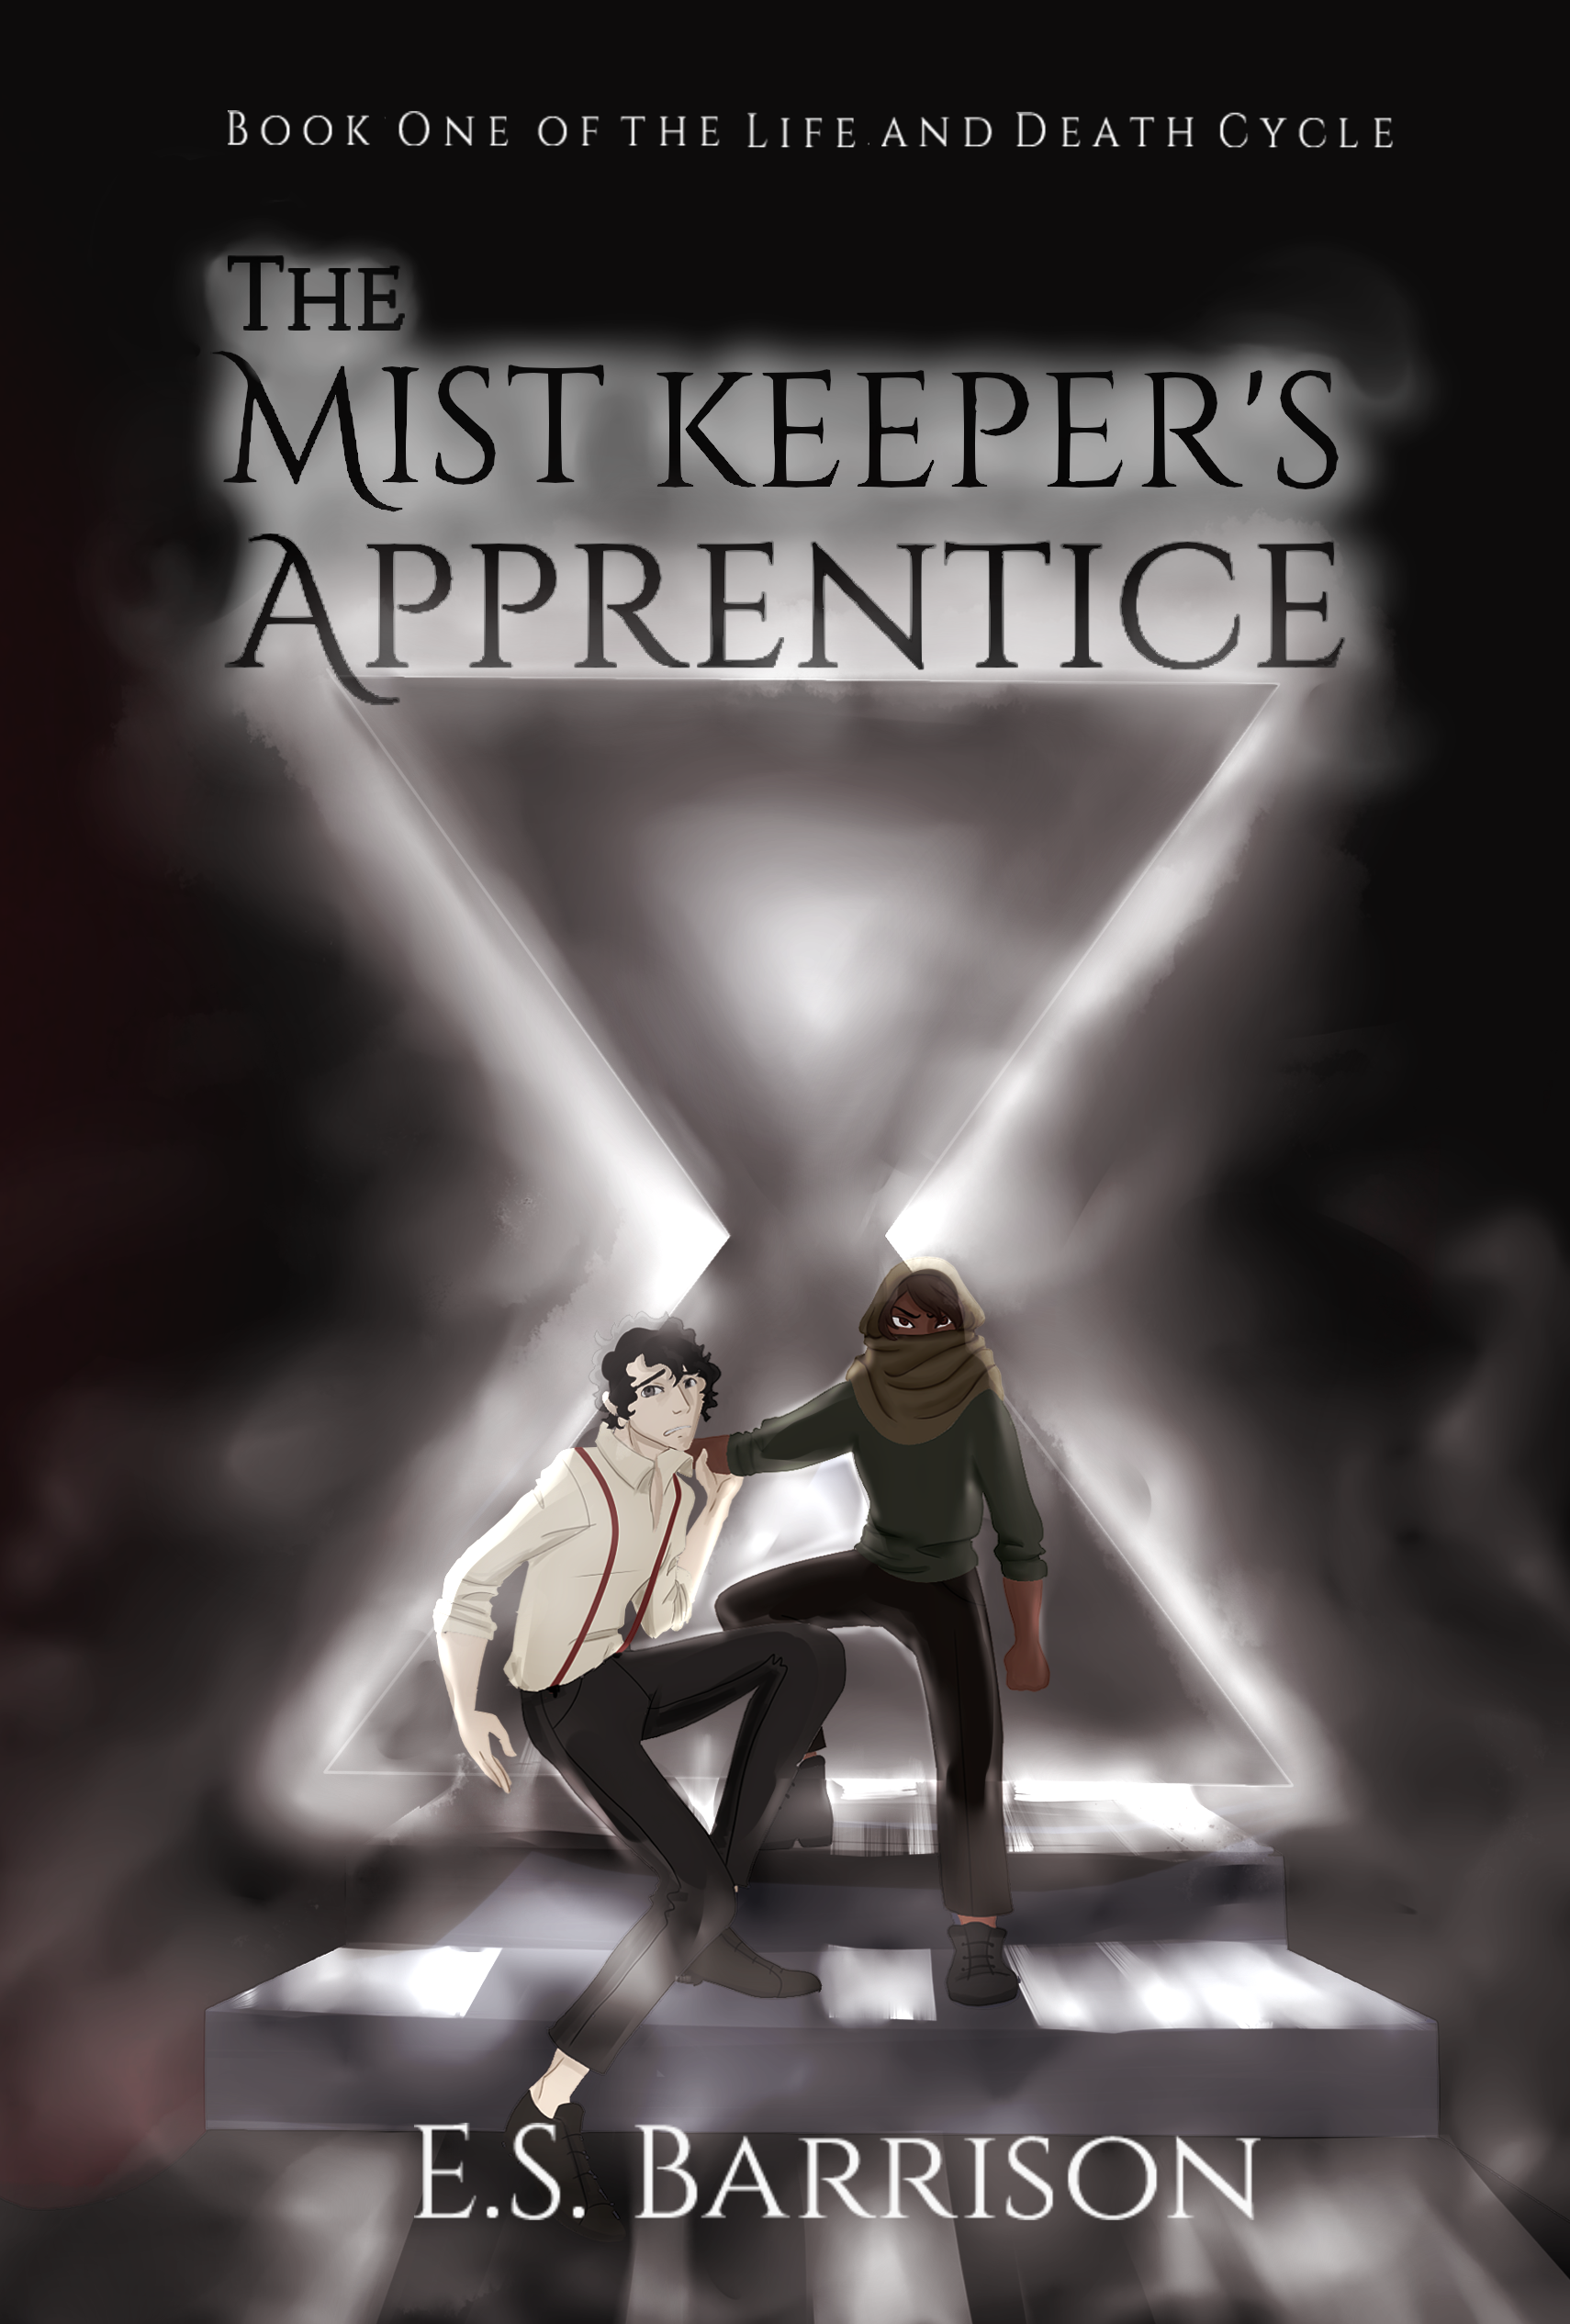 The Mist Keeper's Apprentice